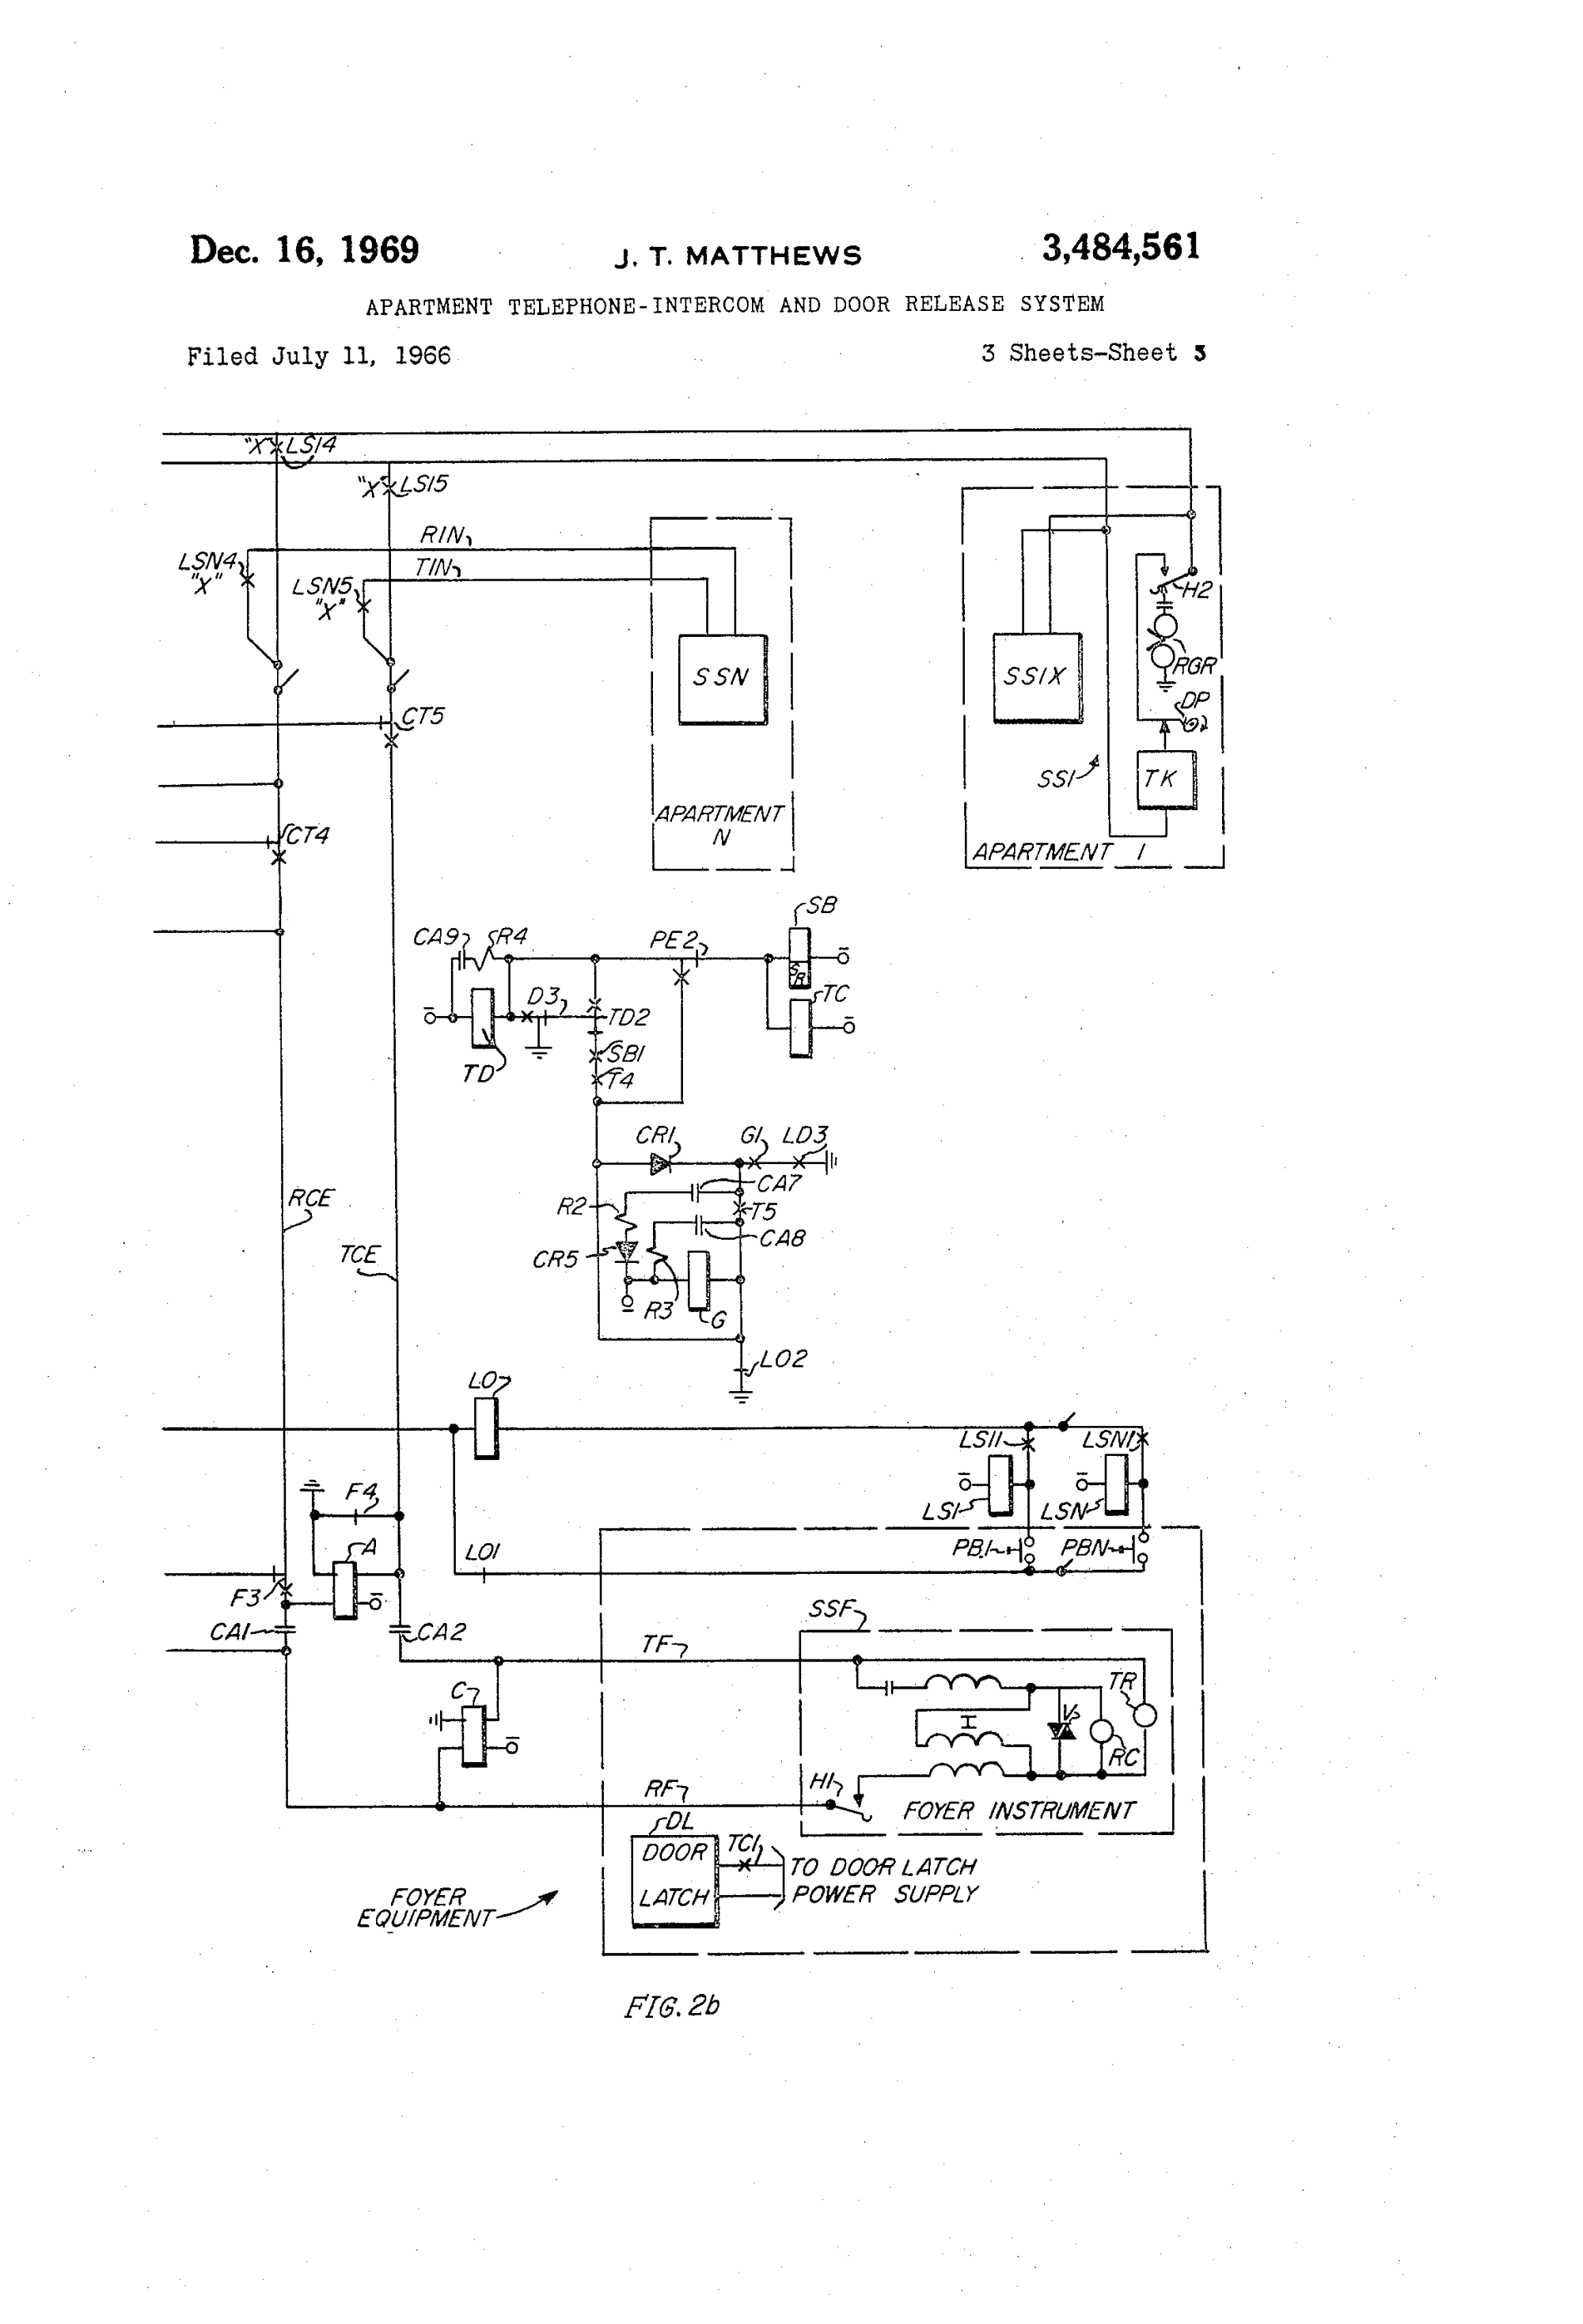 hight resolution of  us3484561 2 patent us3484561 apartment telephone intercom and door release telephone intercom wiring diagram at cita